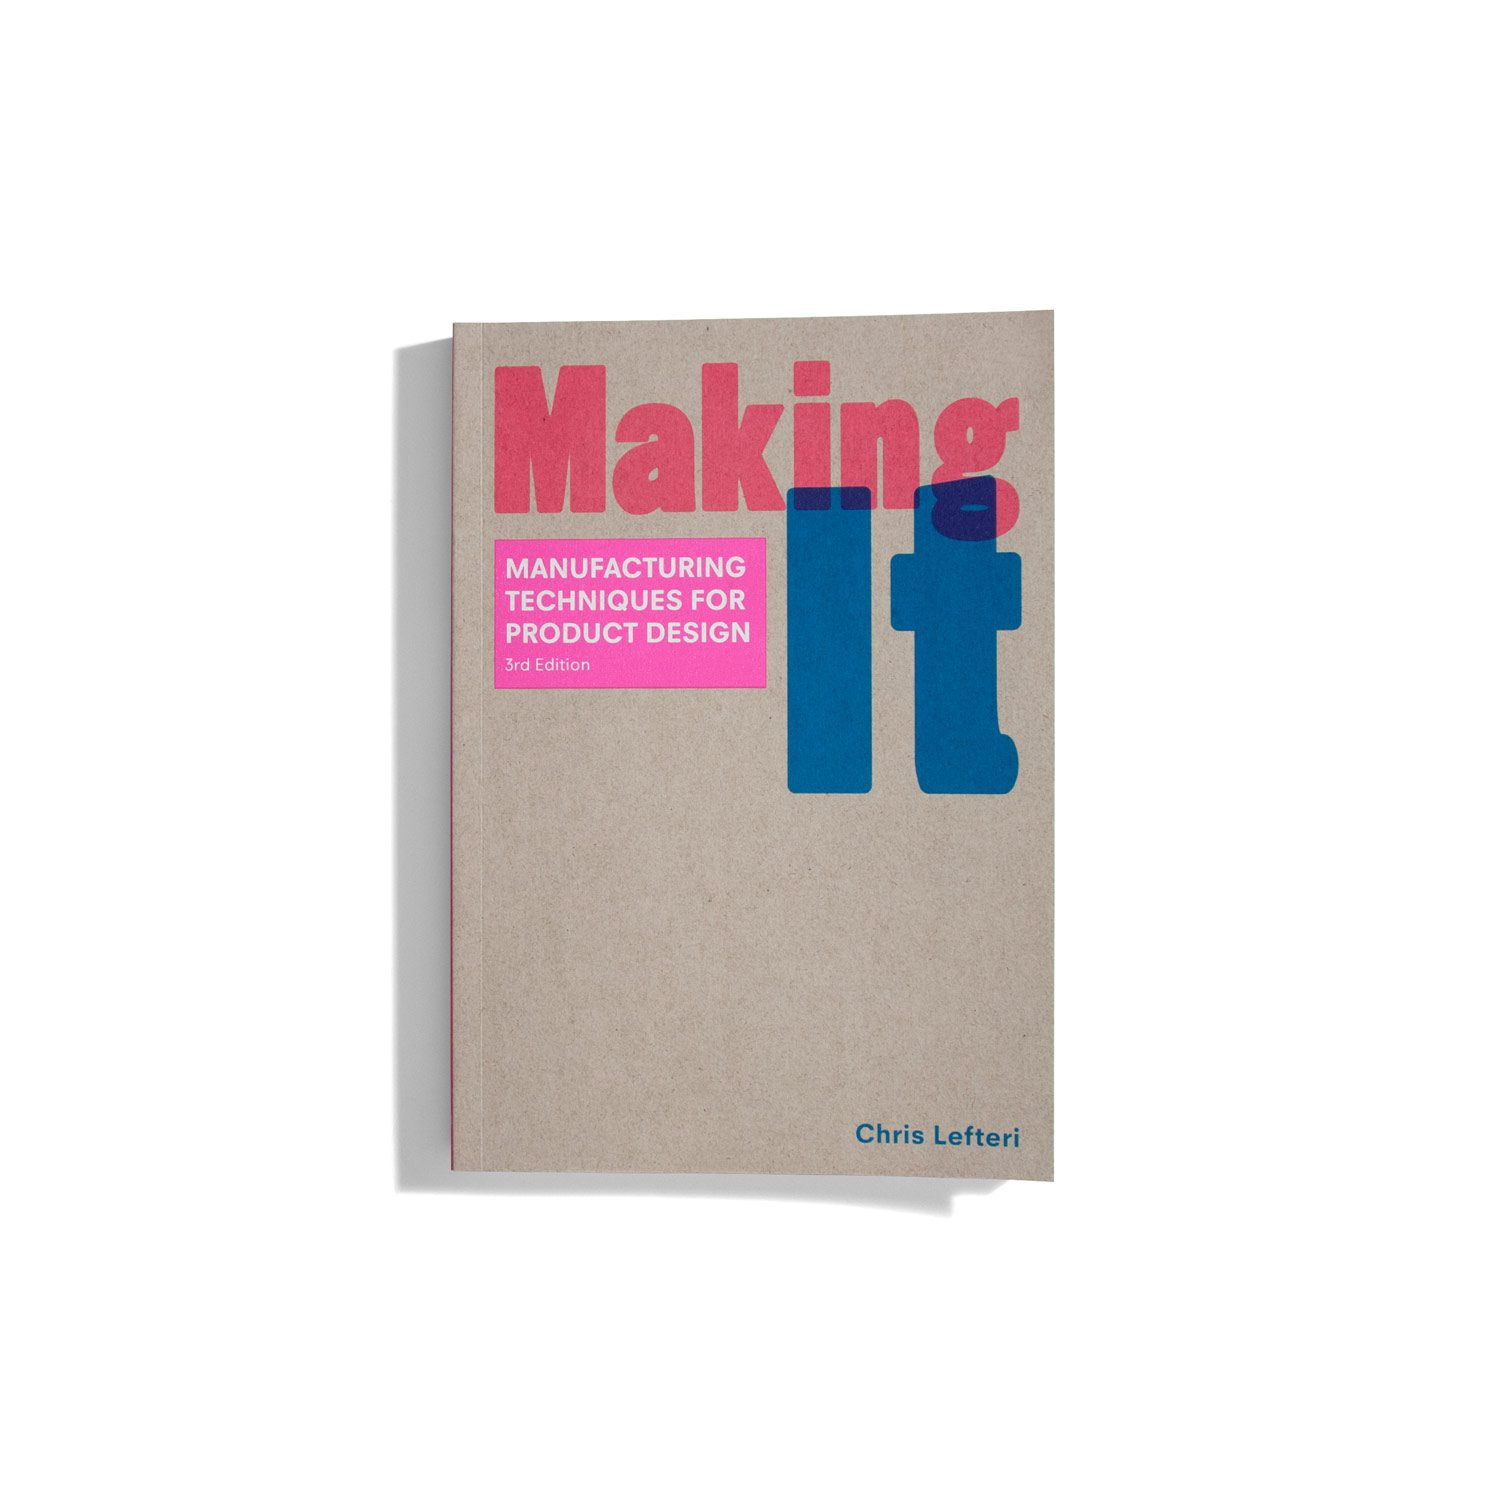 Making it - Chris Lefteri